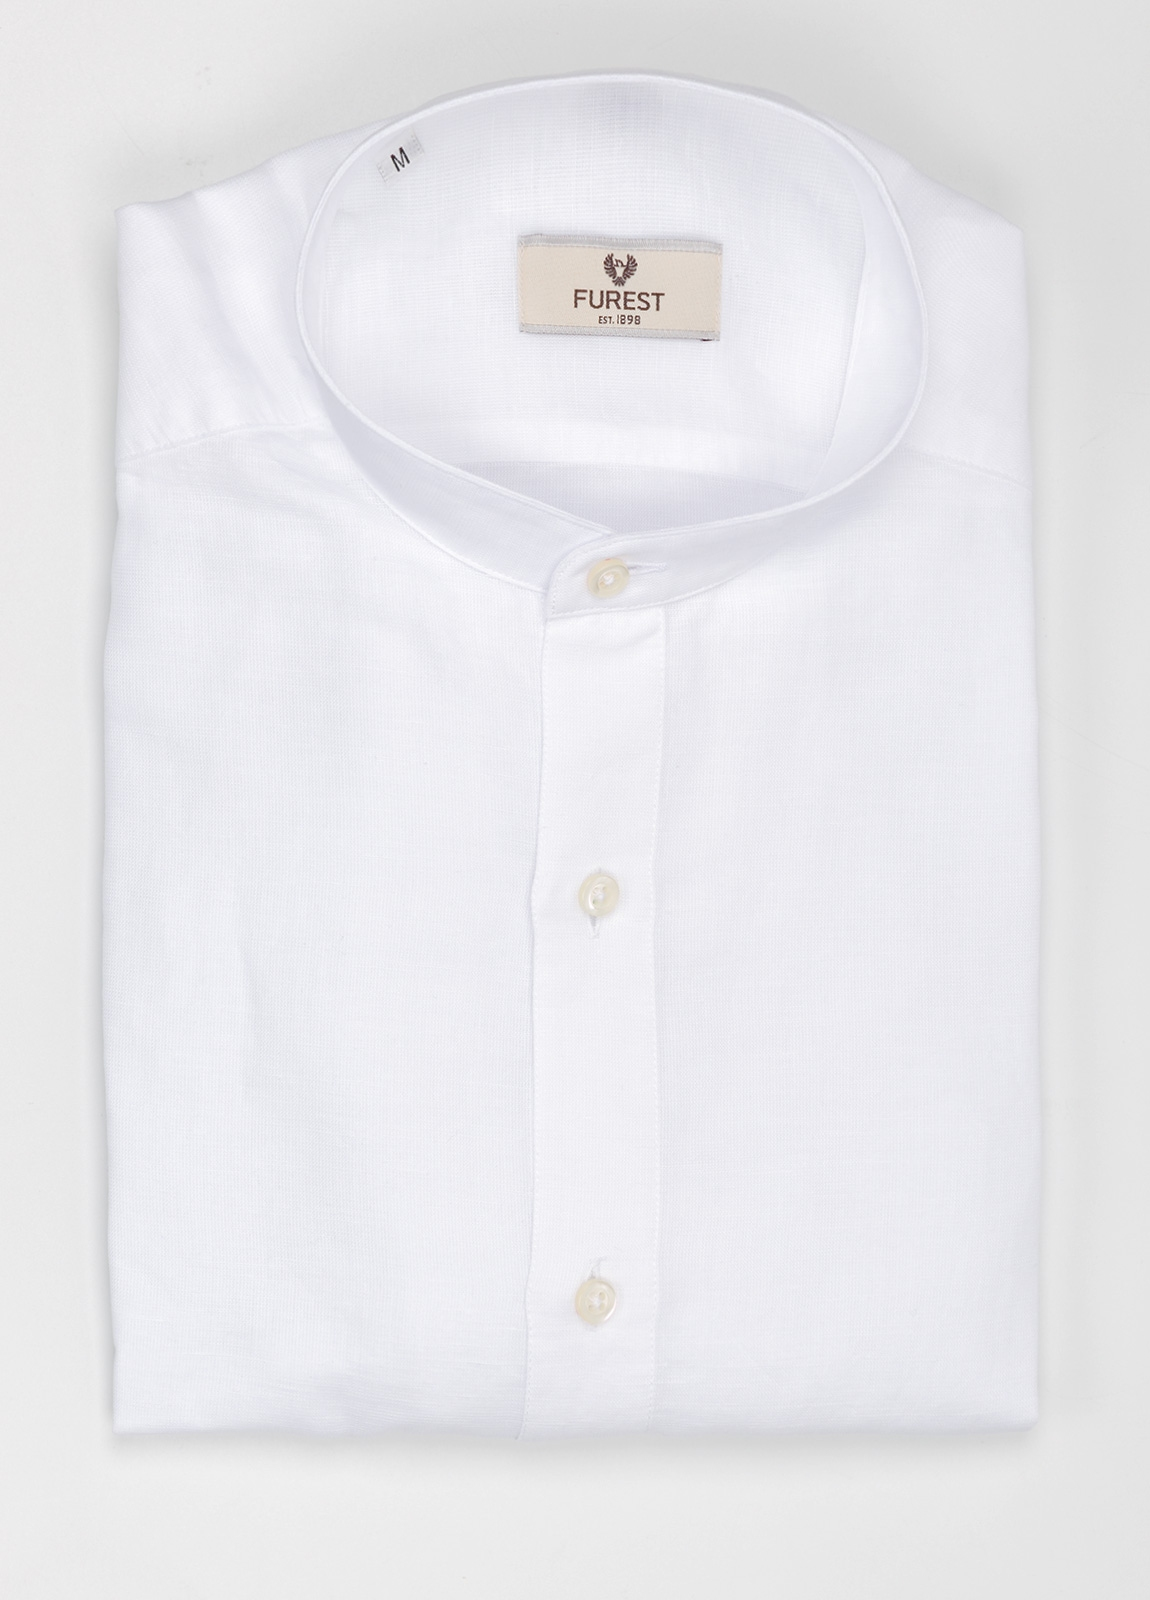 Camisa Leisure Wear SLIM FIT cuello MAO tejido liso textura color blanco, 100% Algodón.